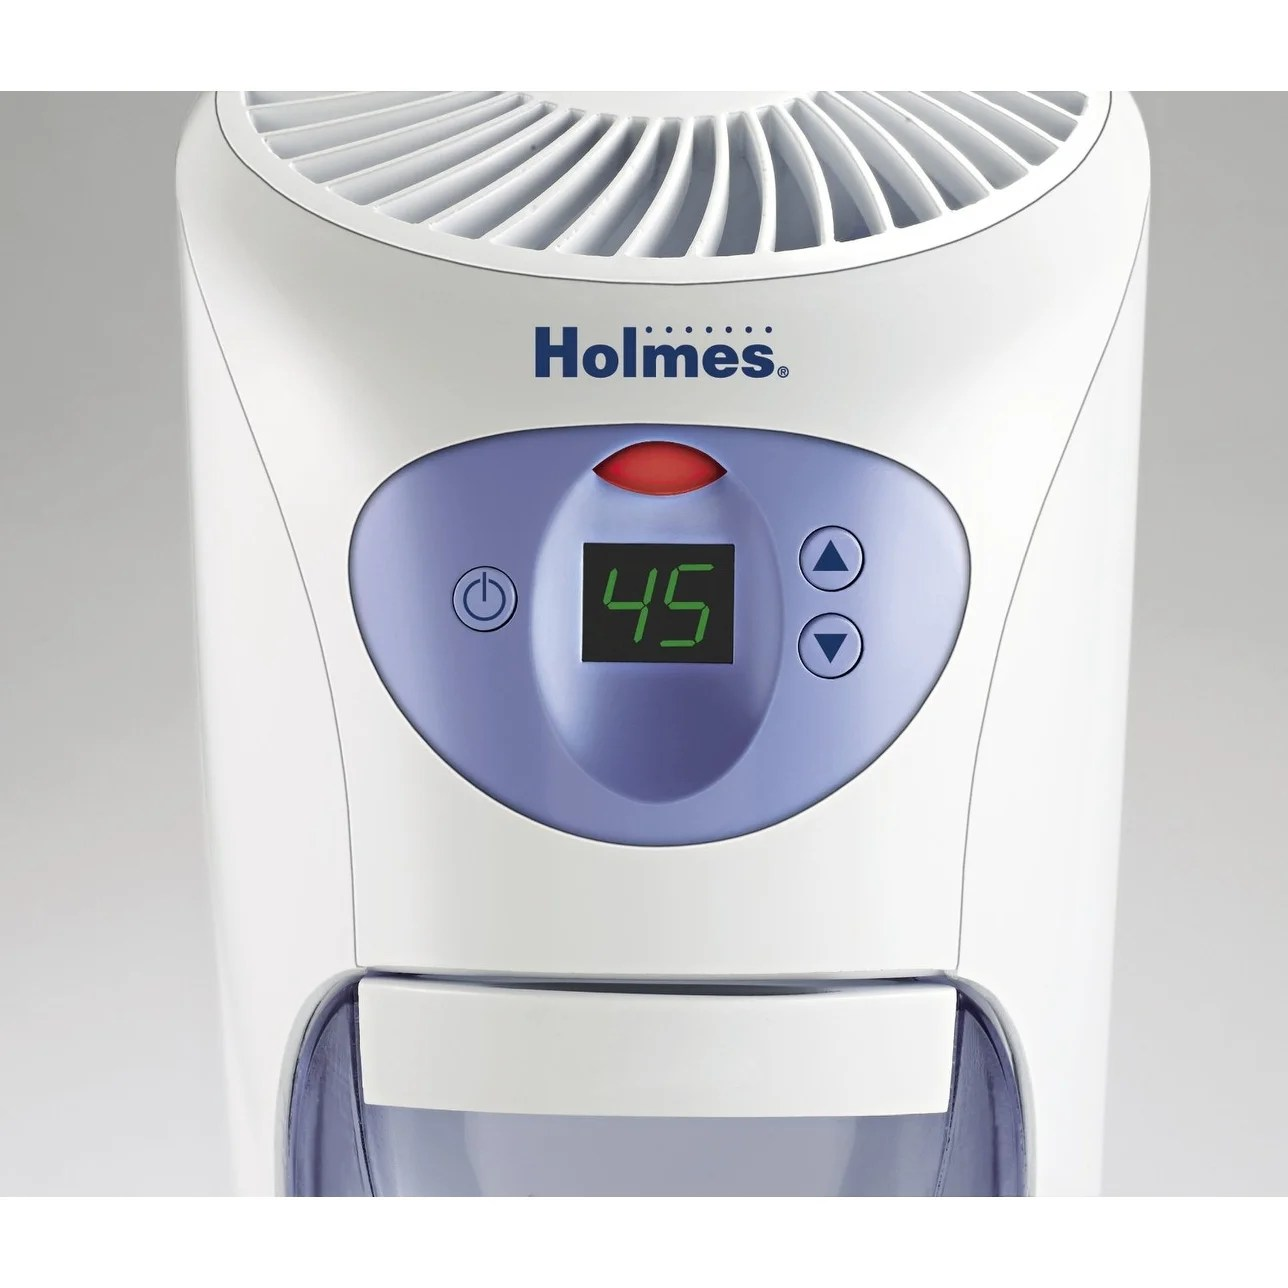 hight resolution of shop holmes hm630 u cool mist tower humidifier white free shipping today overstock com 16015699